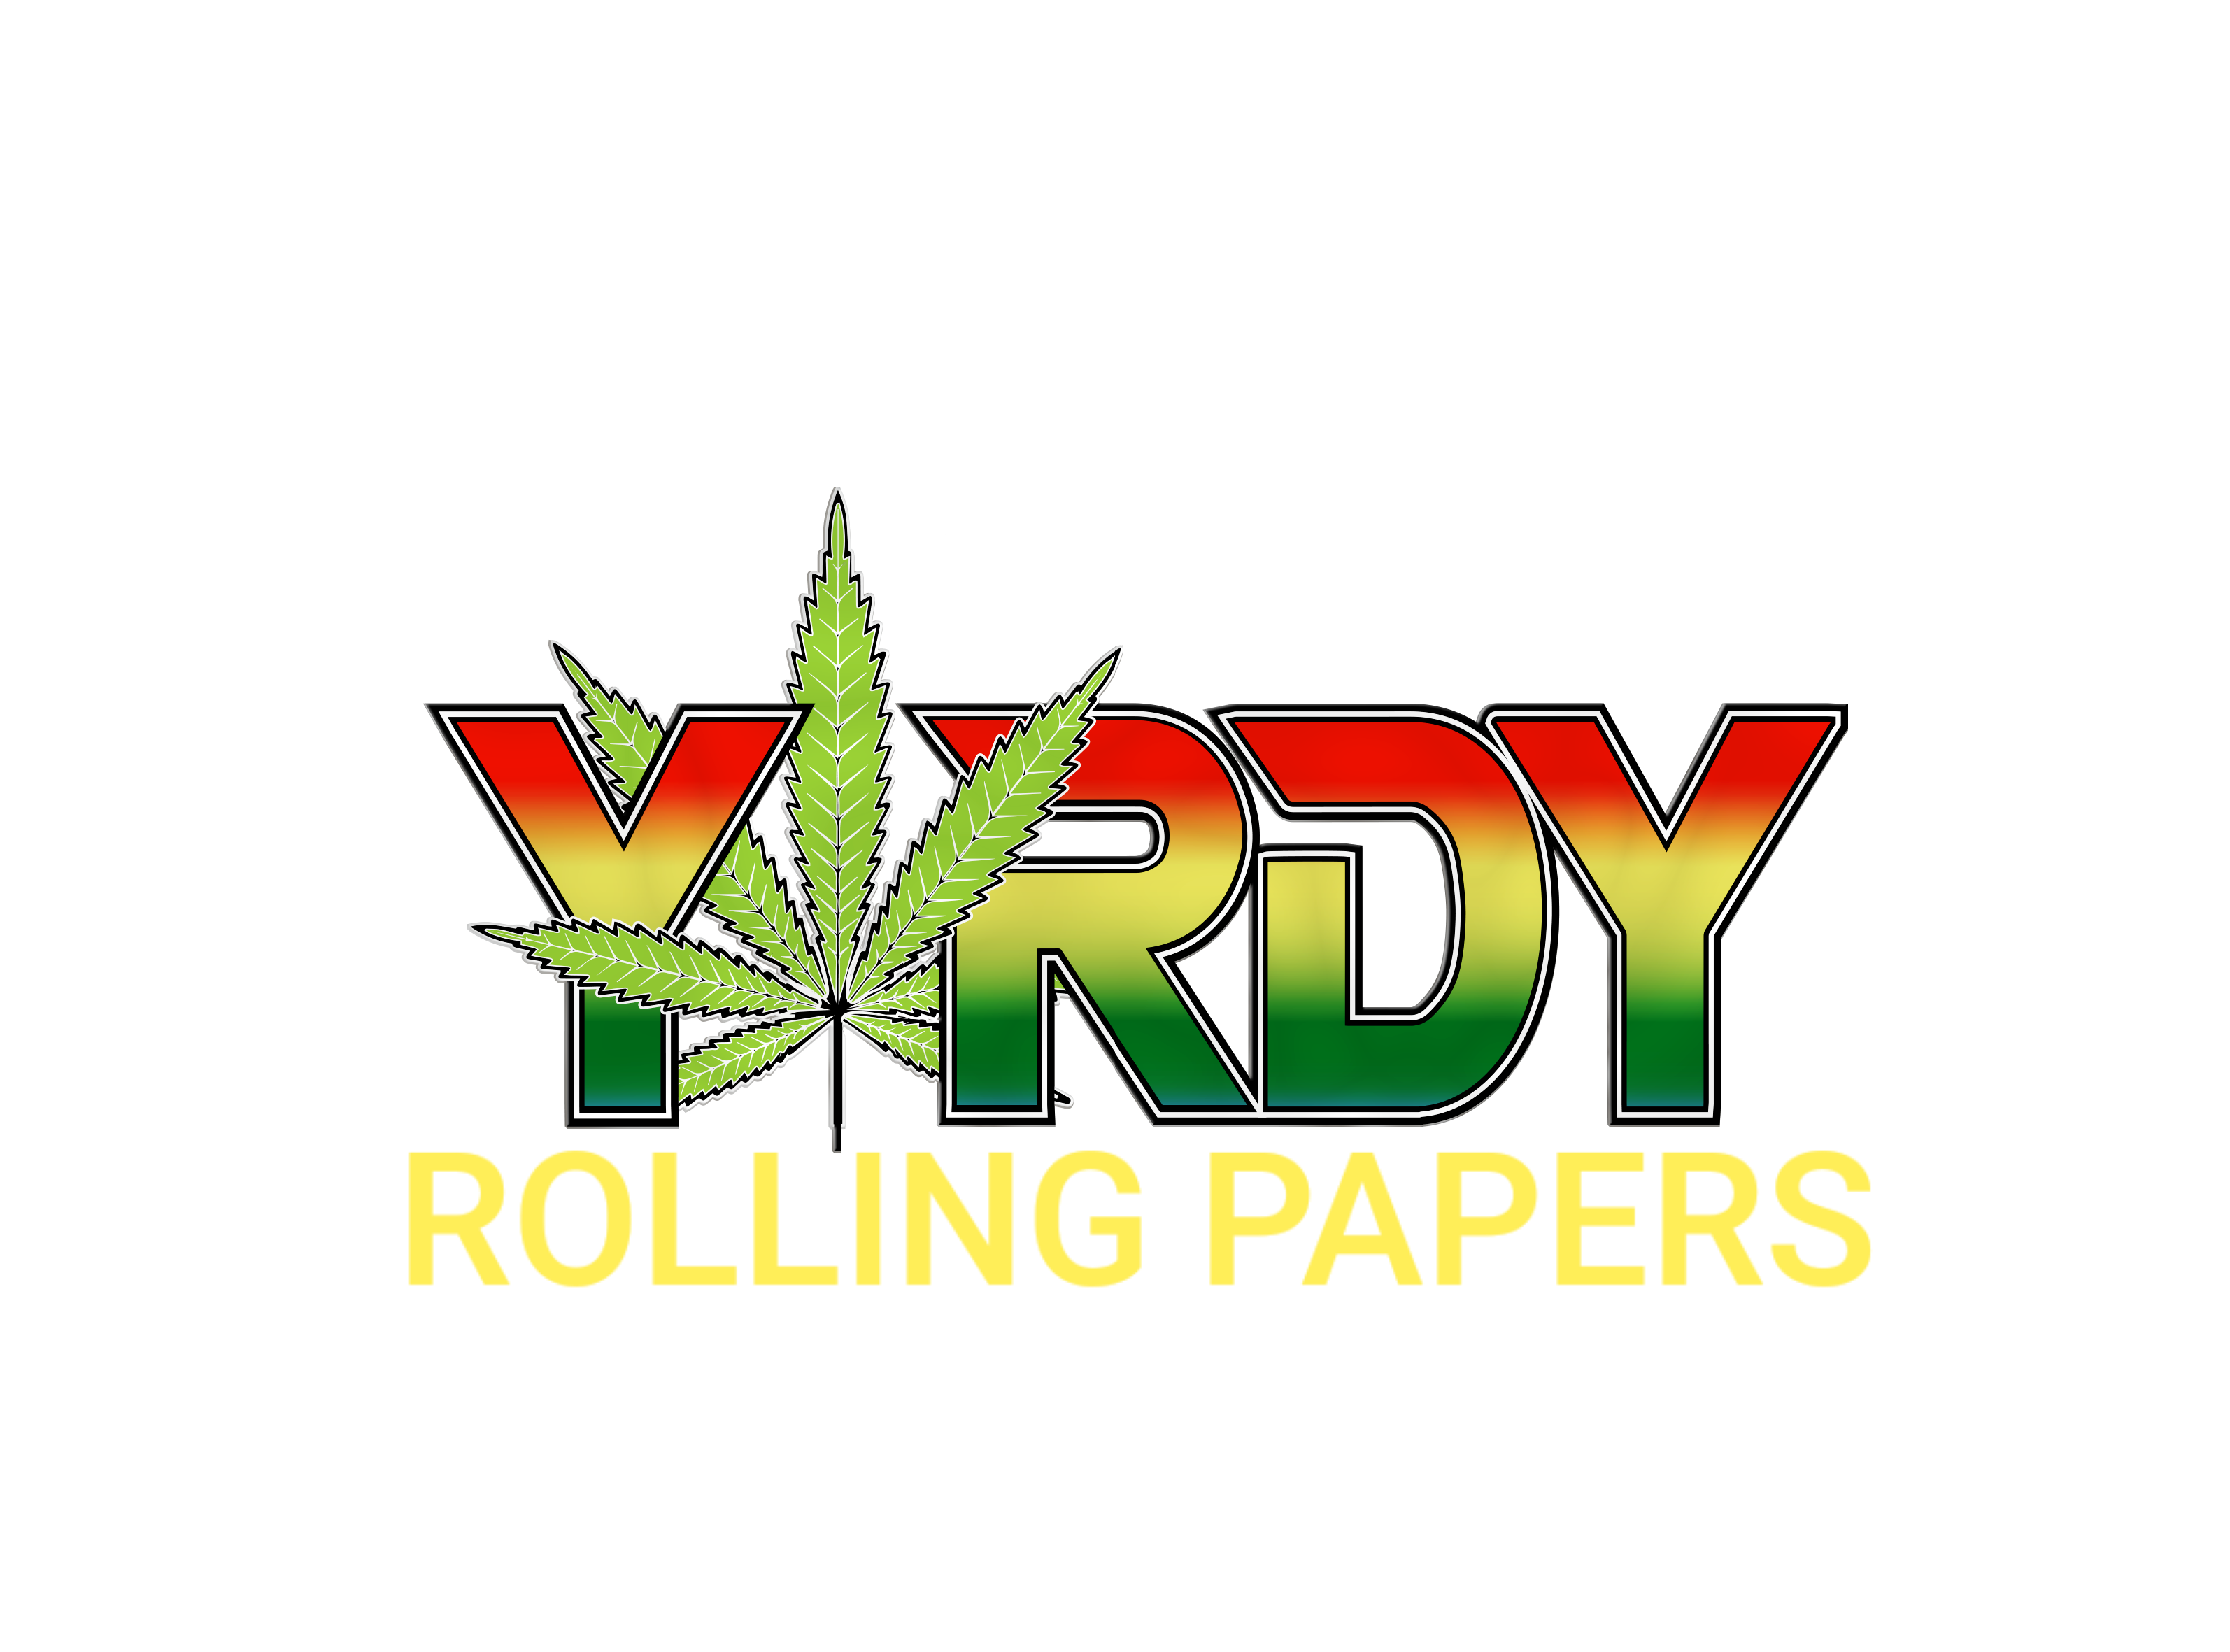 YARDY ROLLING PAPERS